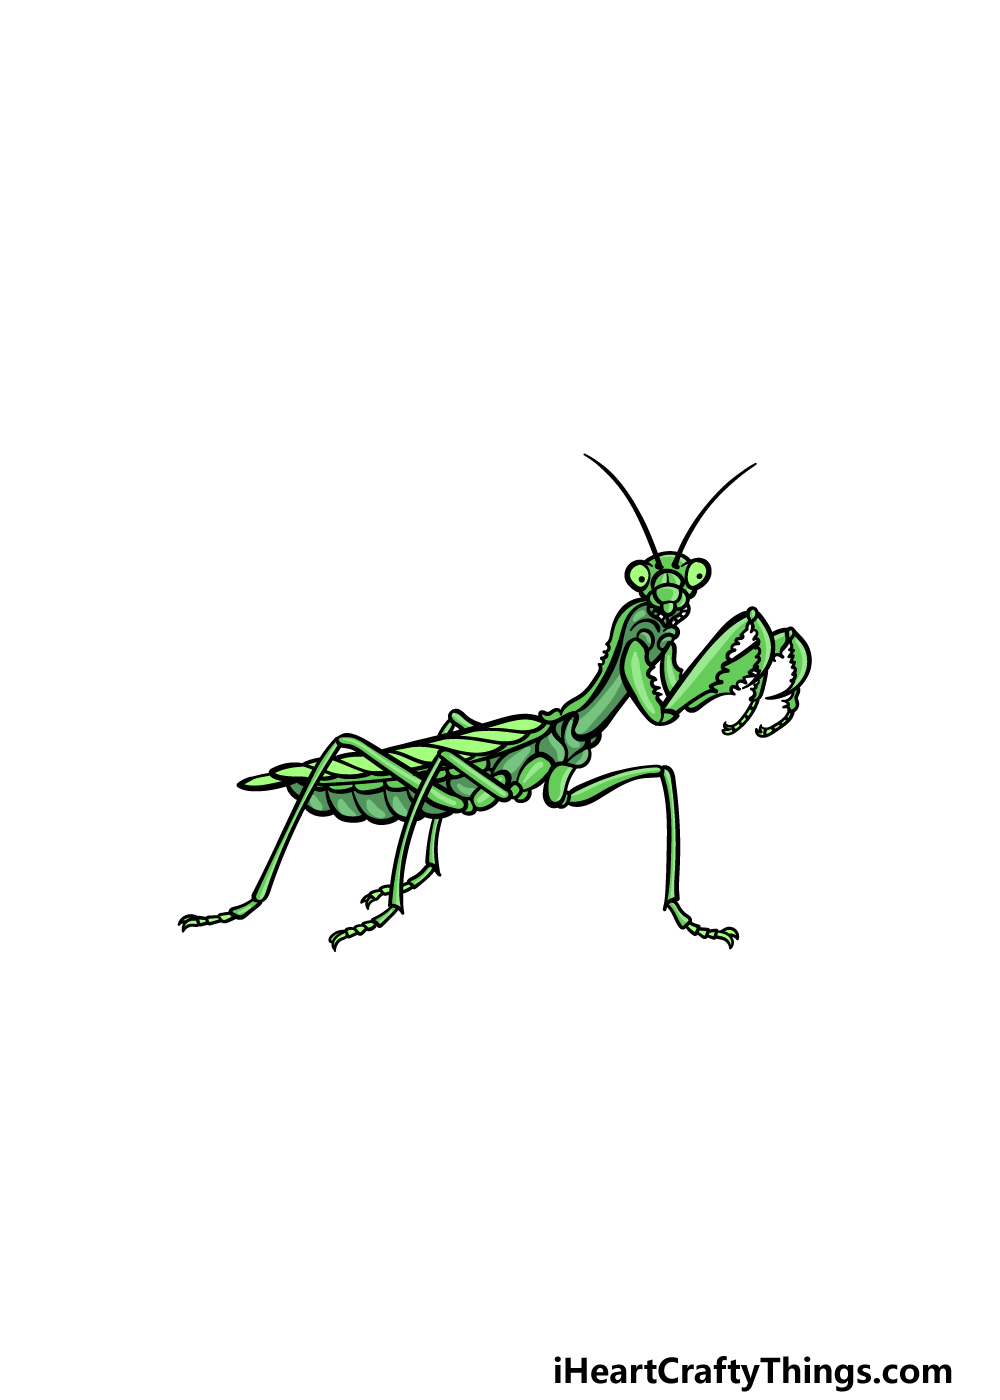 drawing an insect step 6